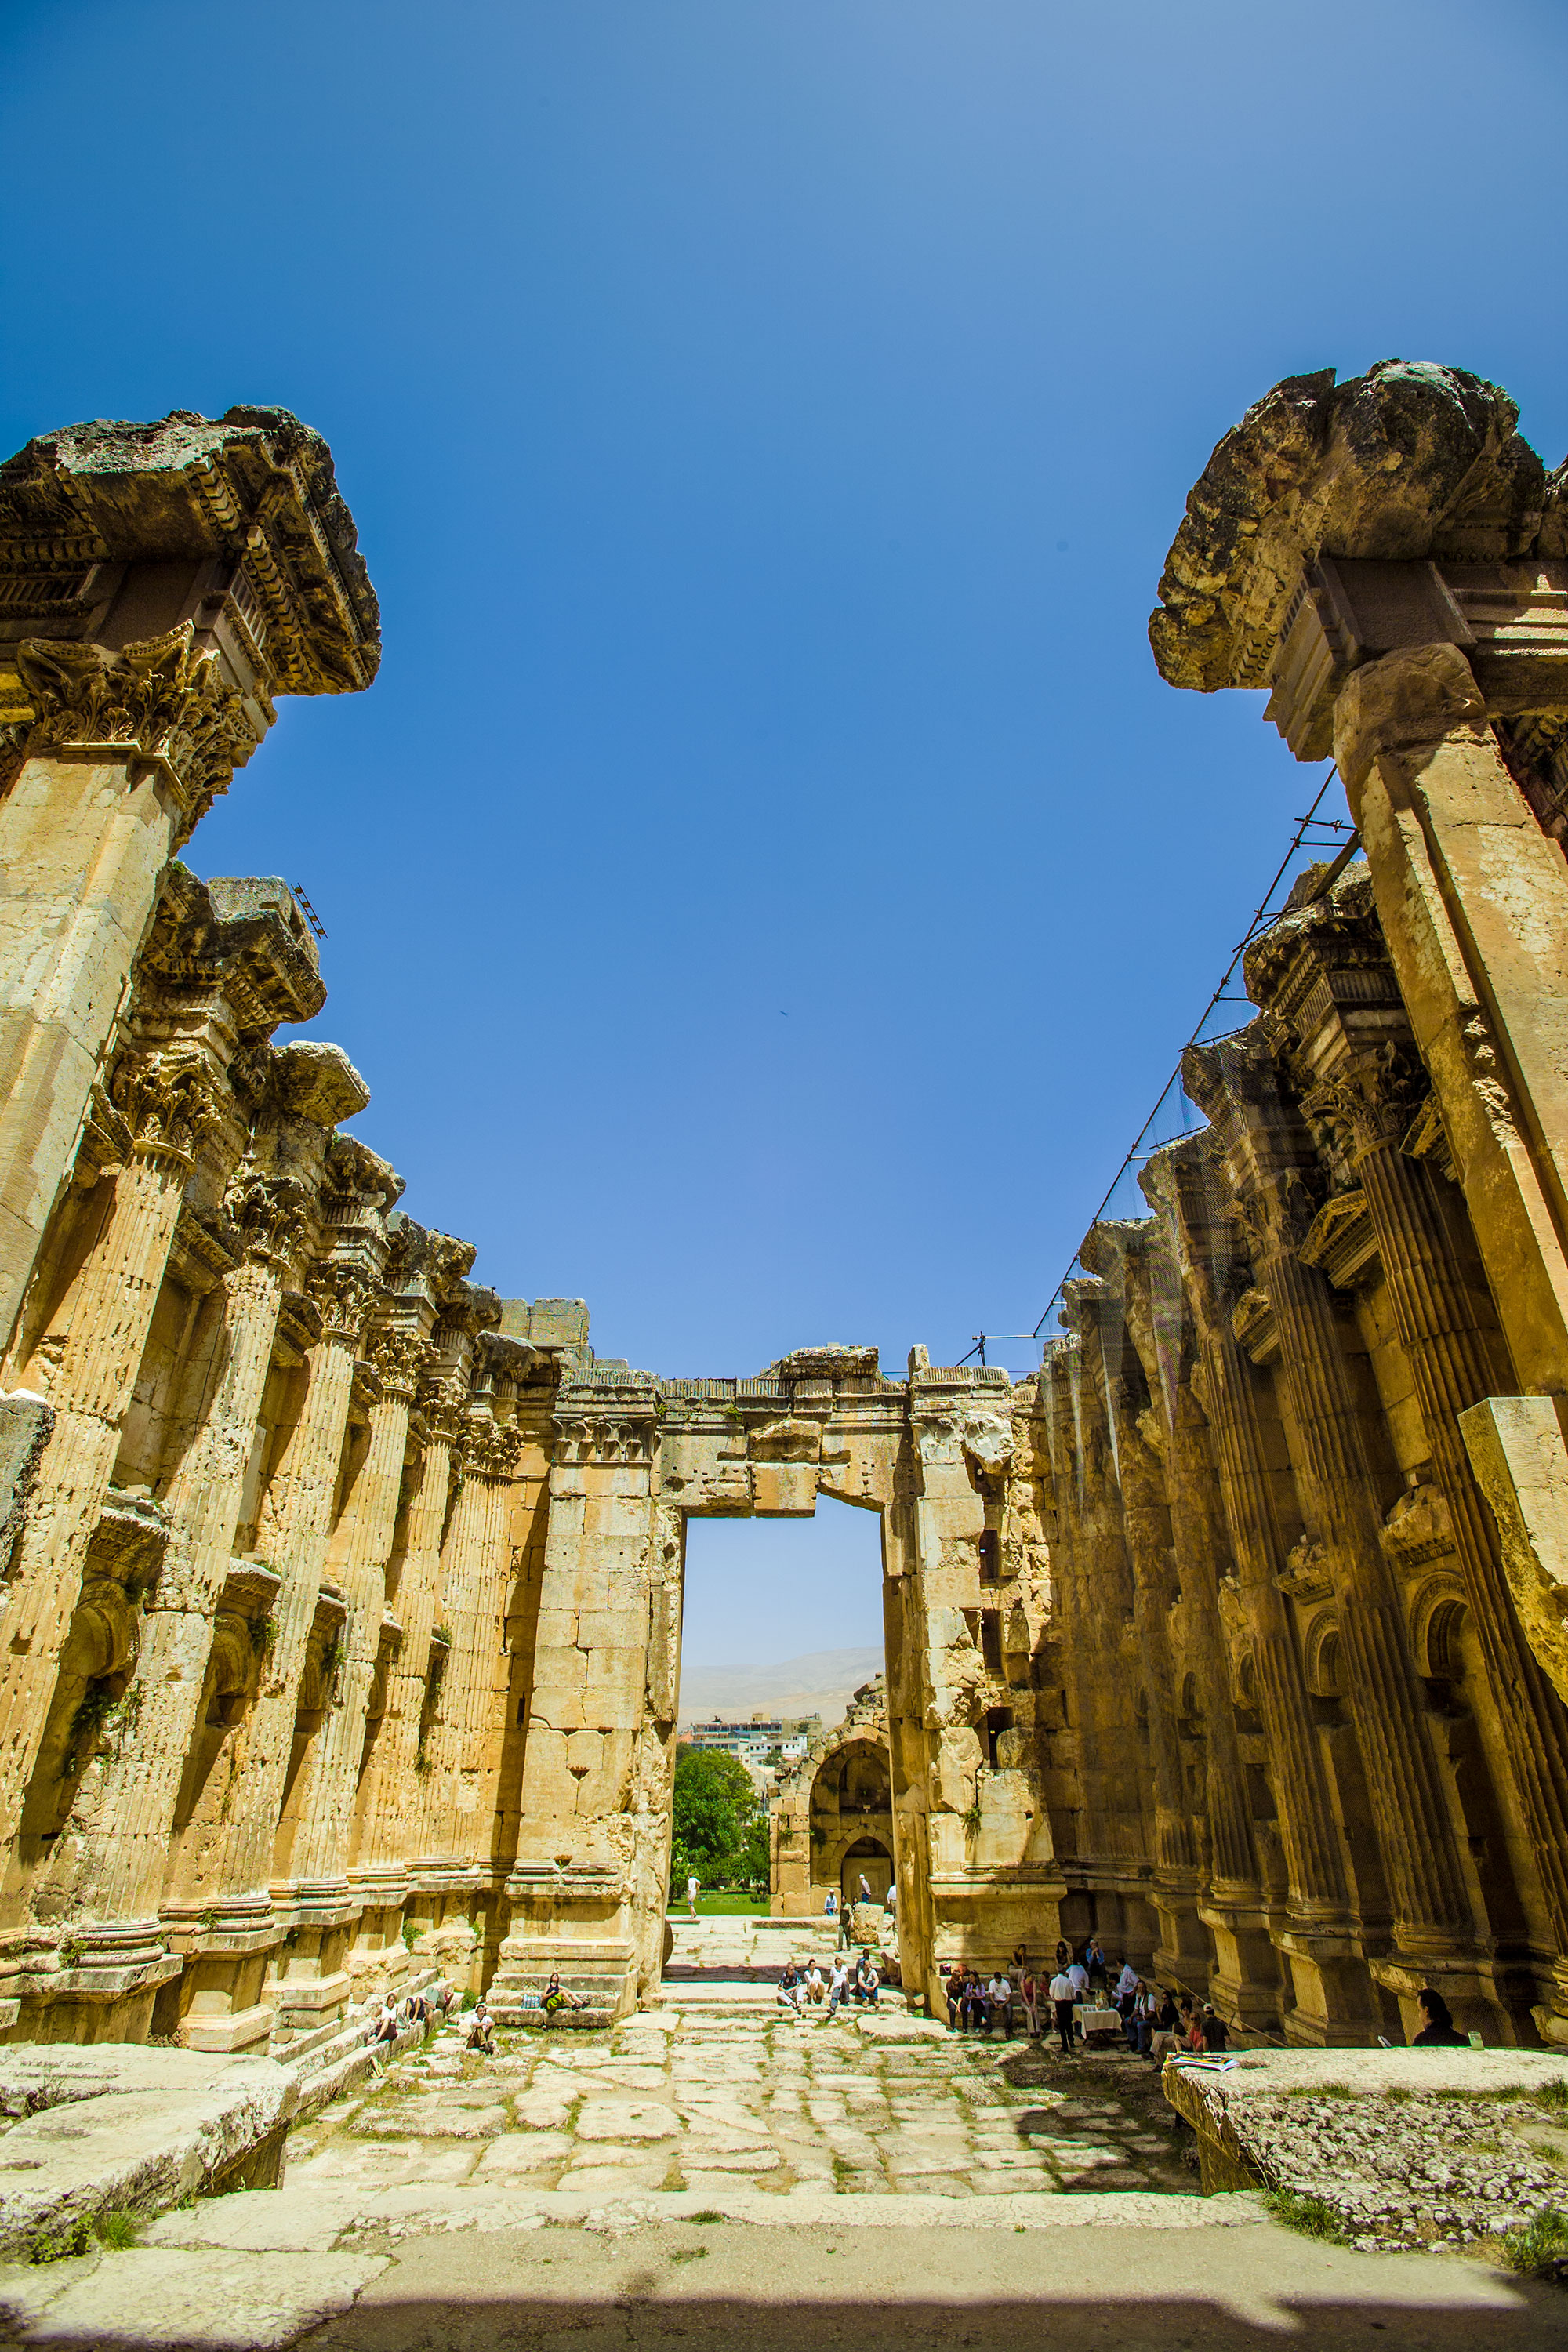 The Temple of Bacchus at Baalbek - Inside